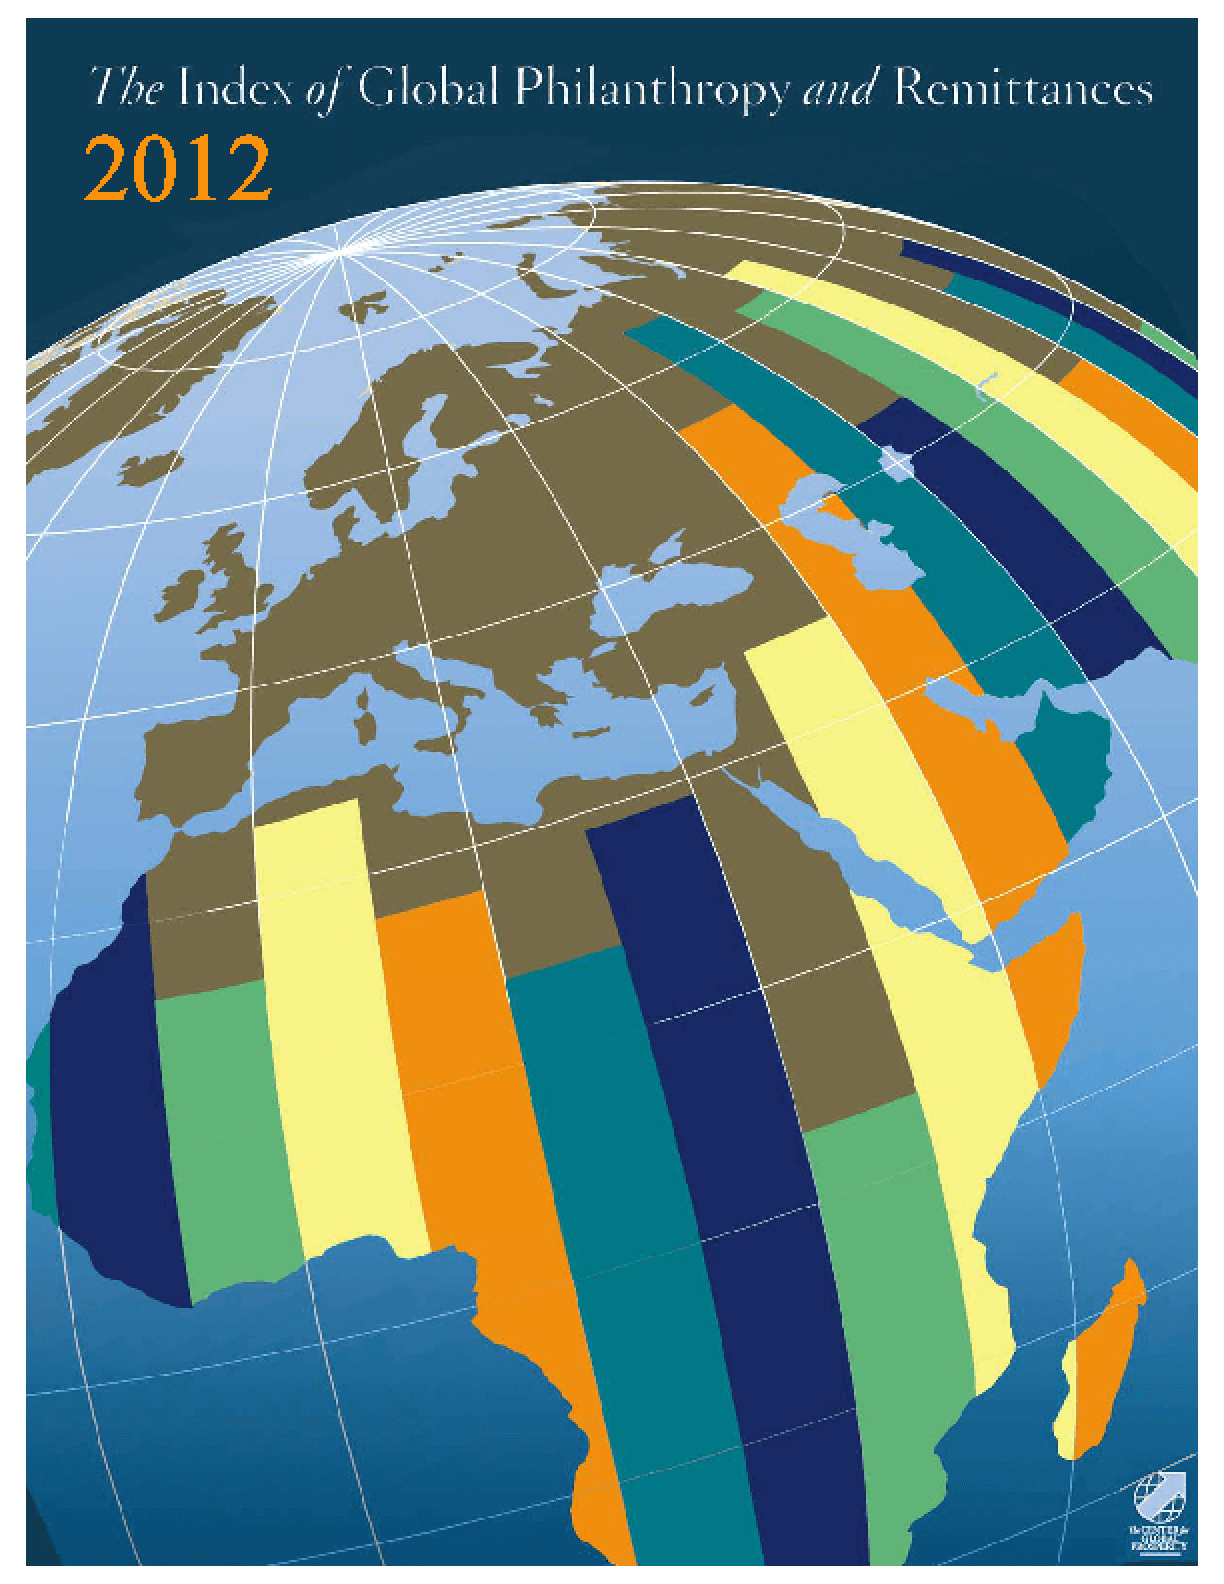 The Index of Global Philanthropy and Remittances 2012